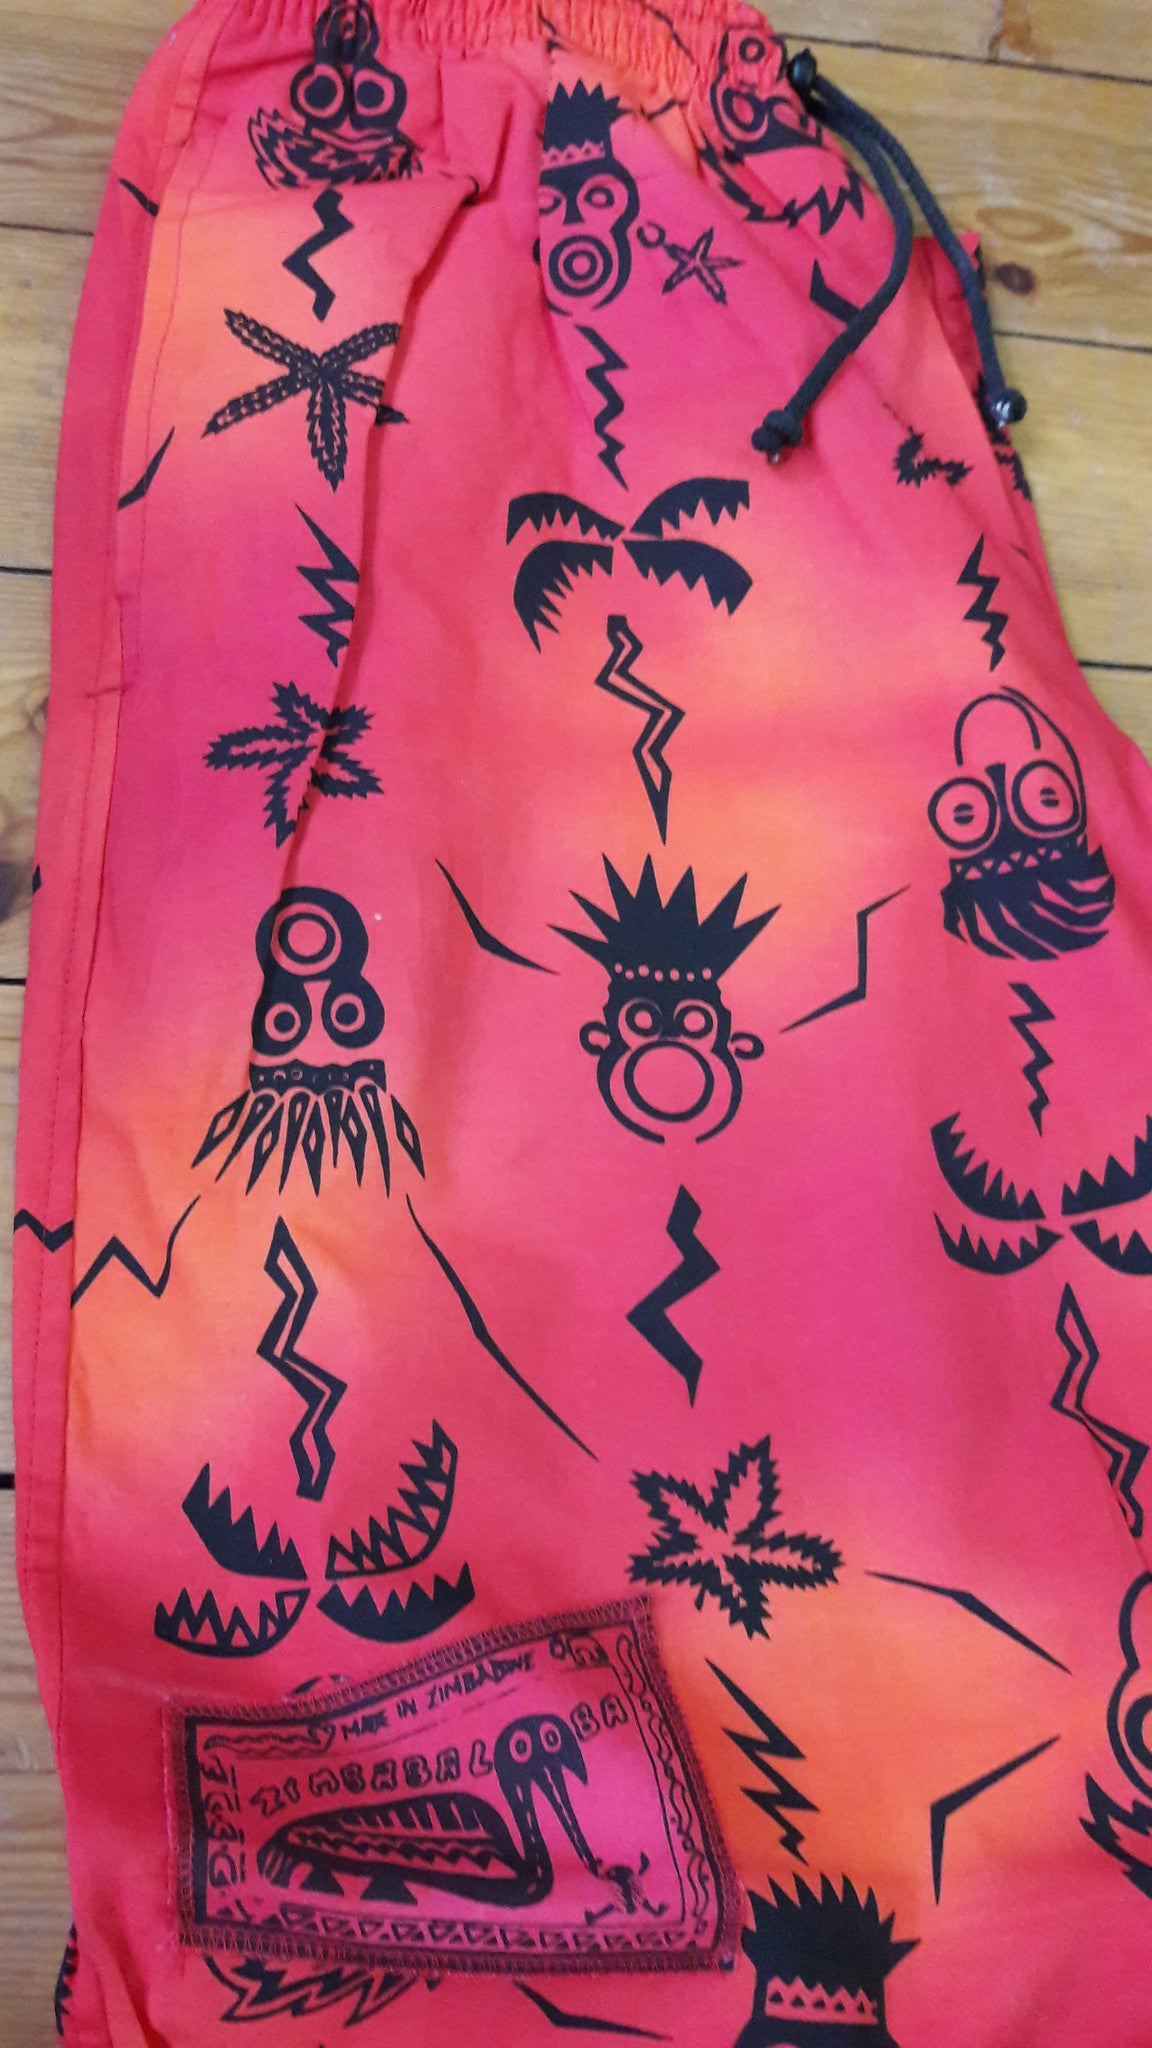 Verts - African Masks Print - 100% Cotton Trousers